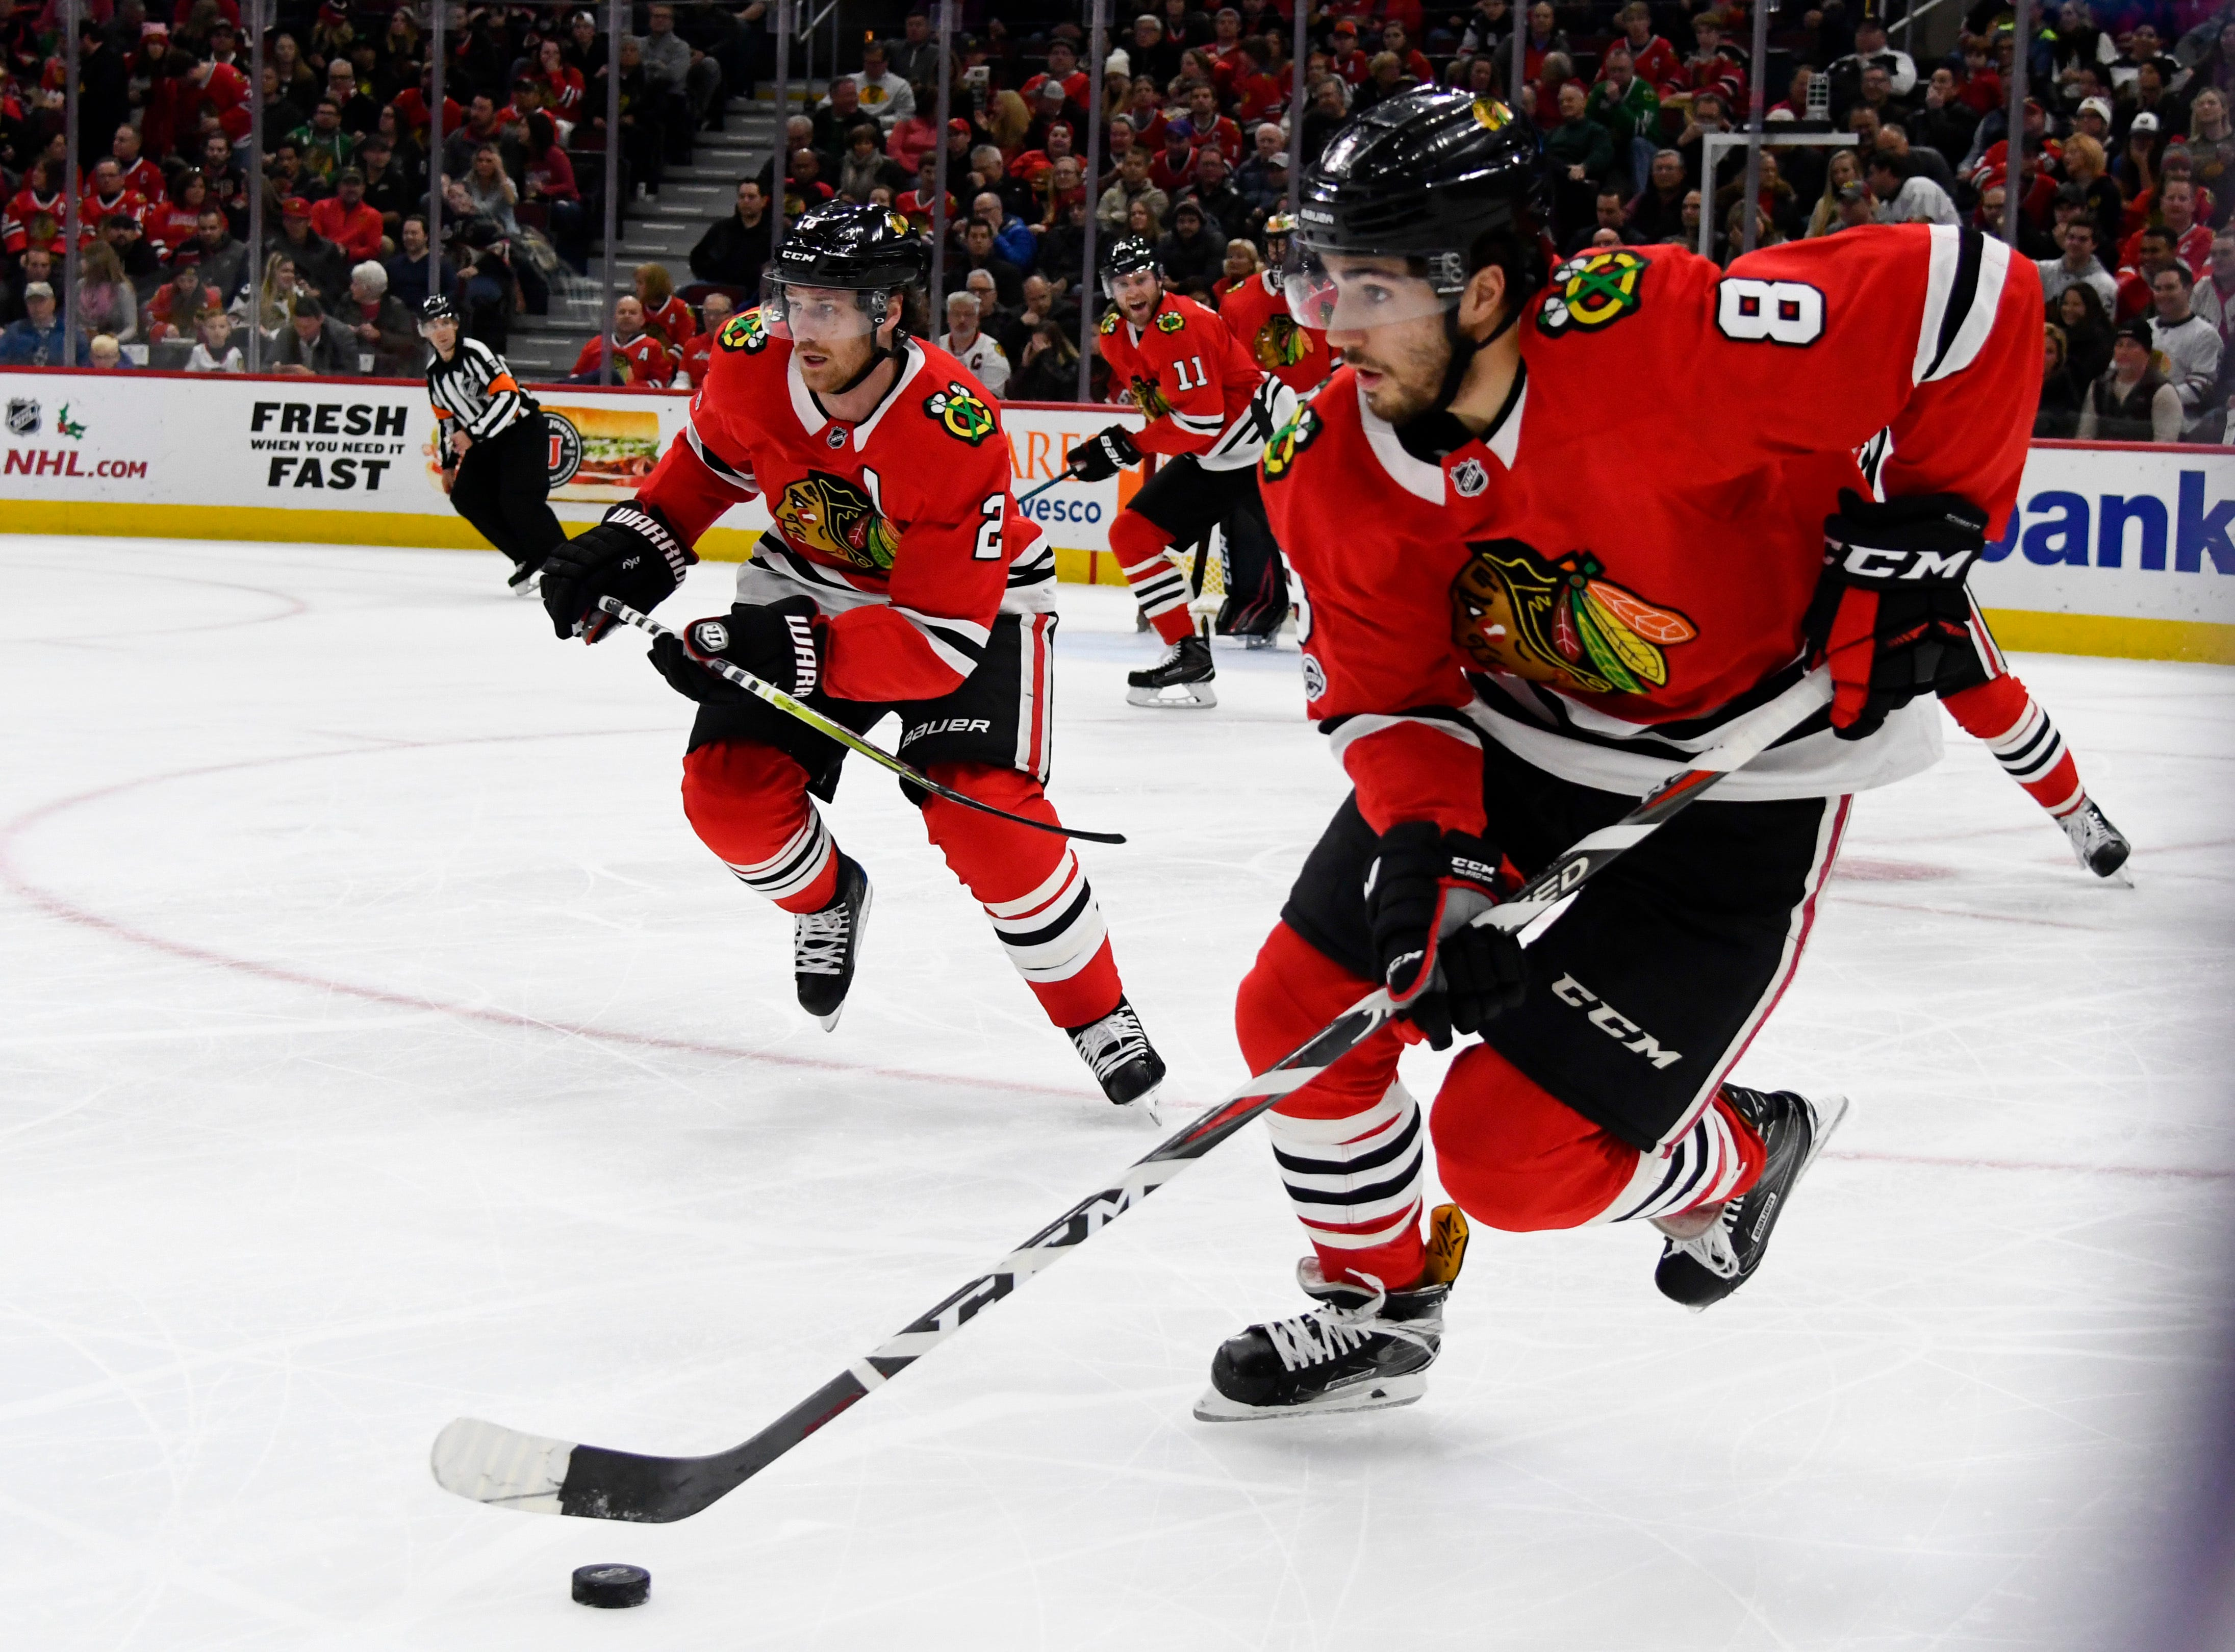 Forsling's goal late in OT lifts Blackhawks over Sabres, 3-2